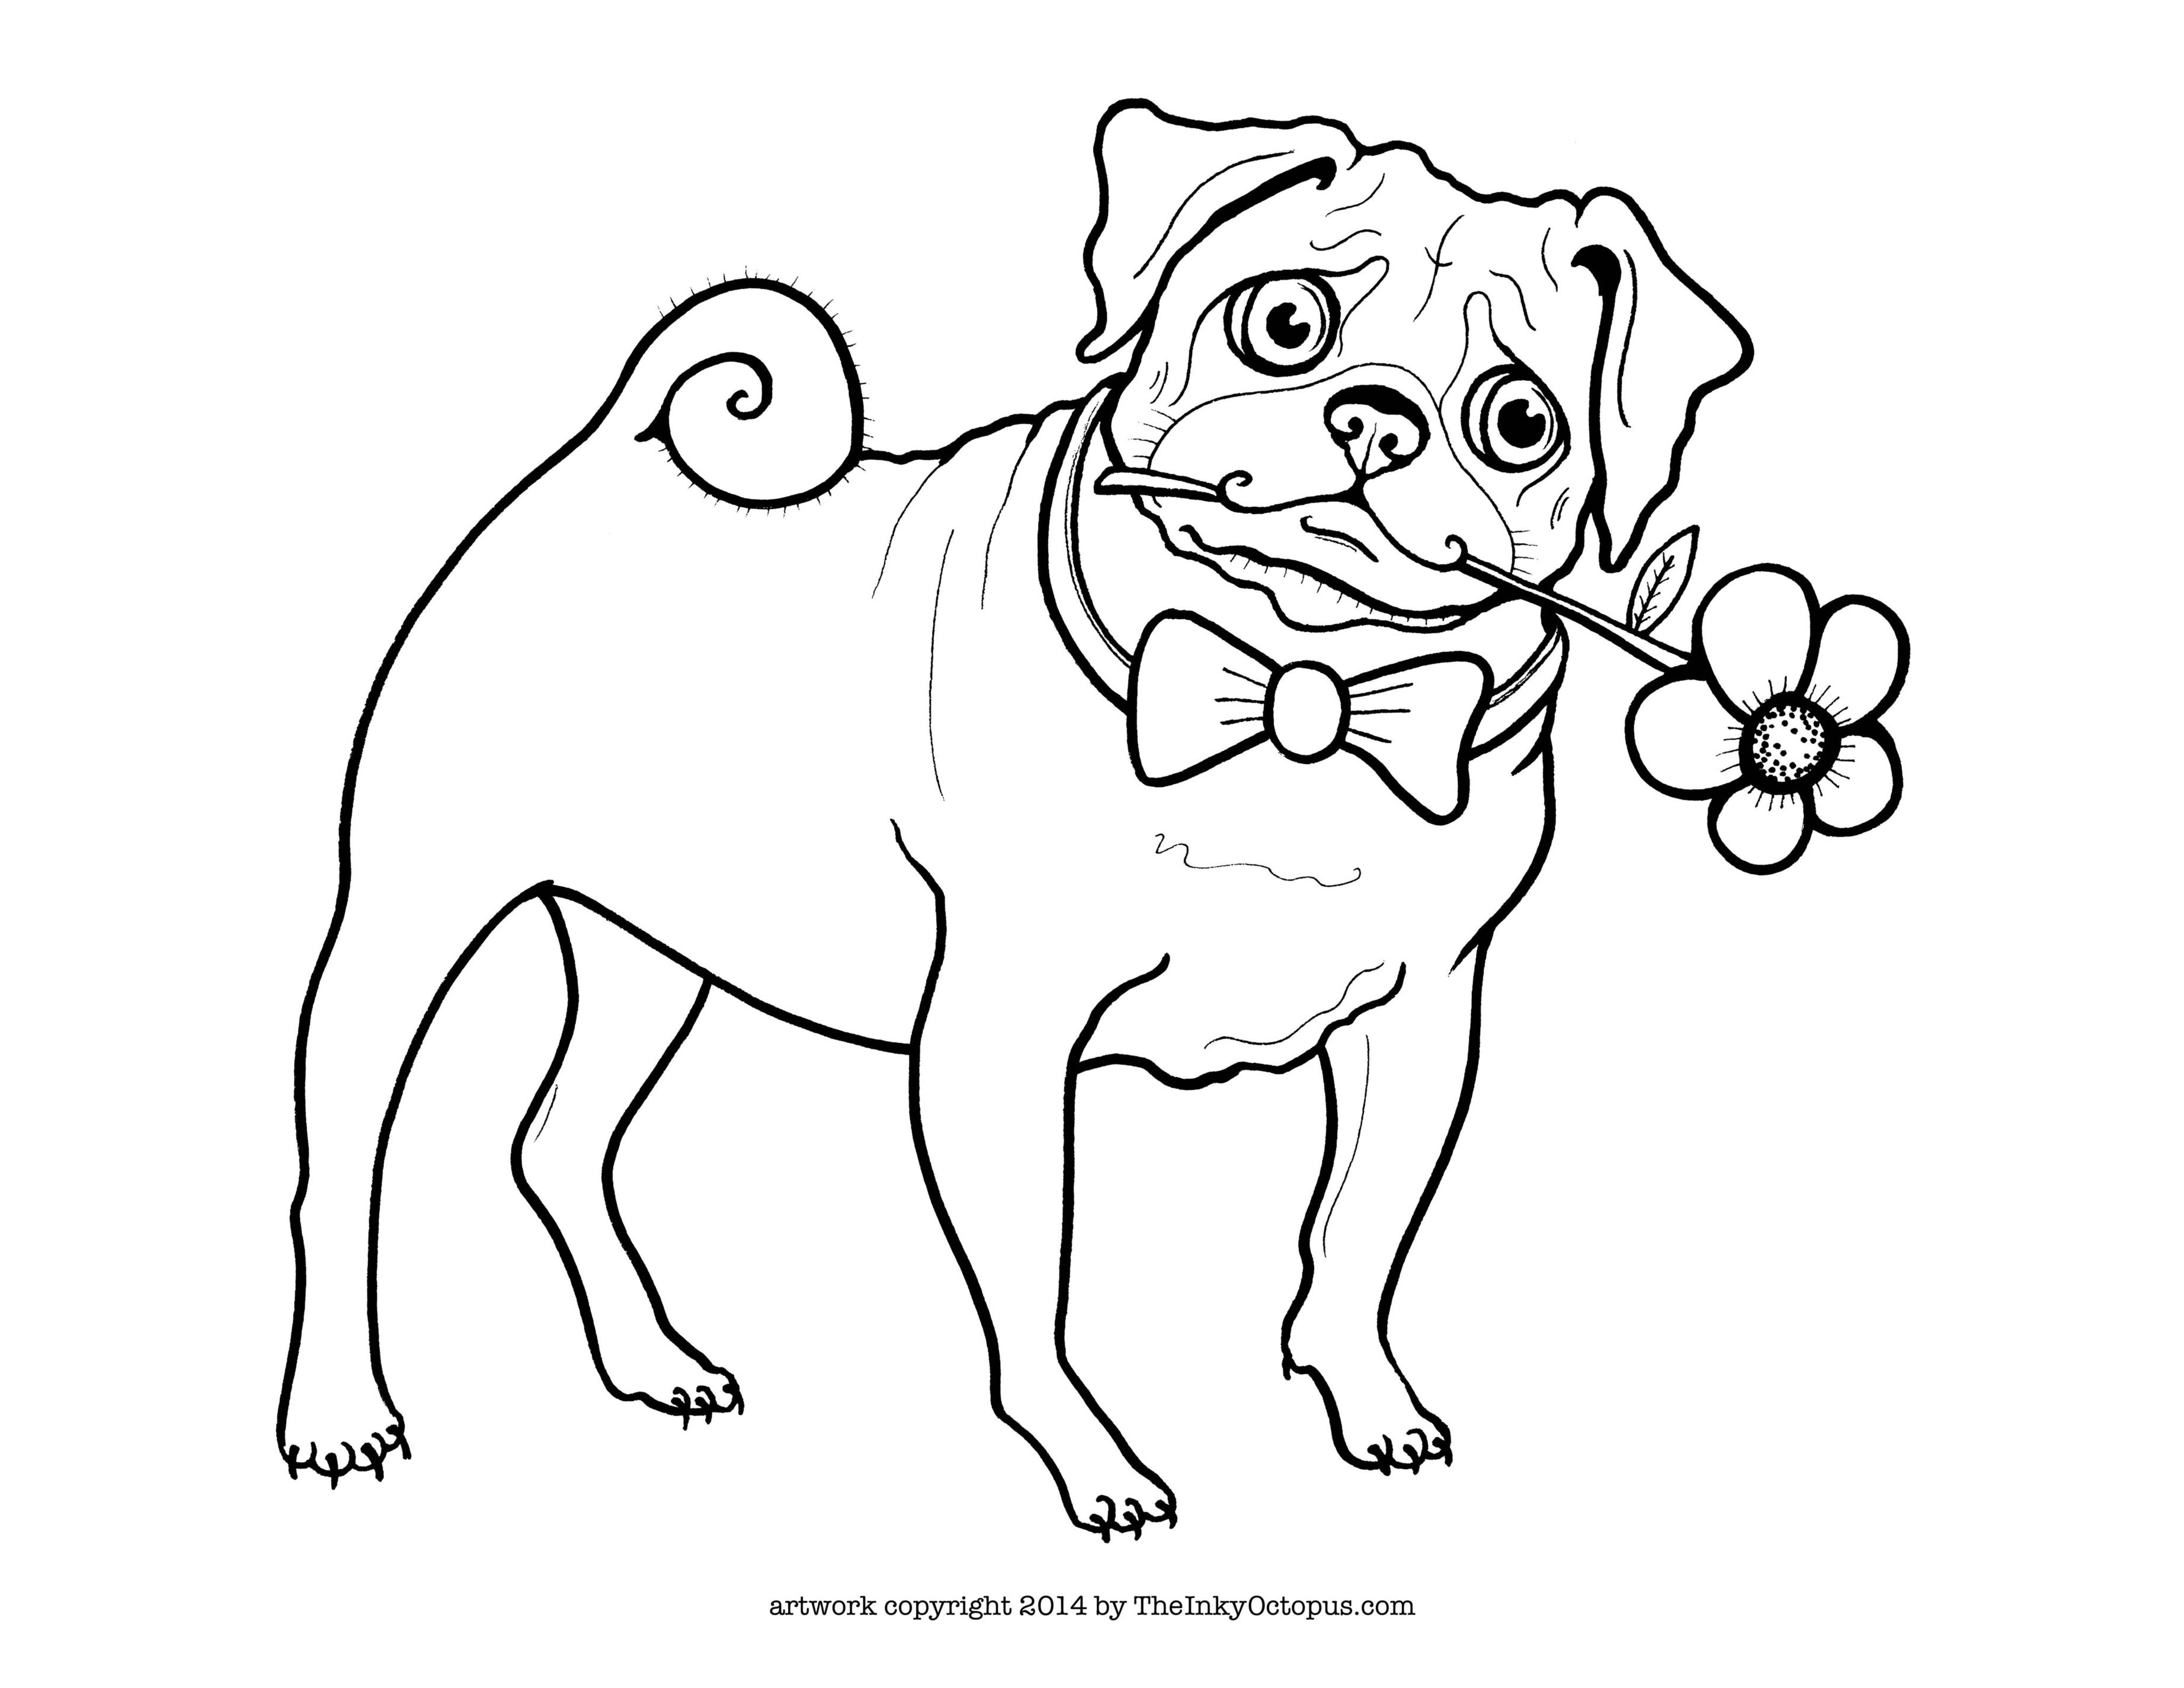 Printable Pug Coloring Page - The Inky Octopus